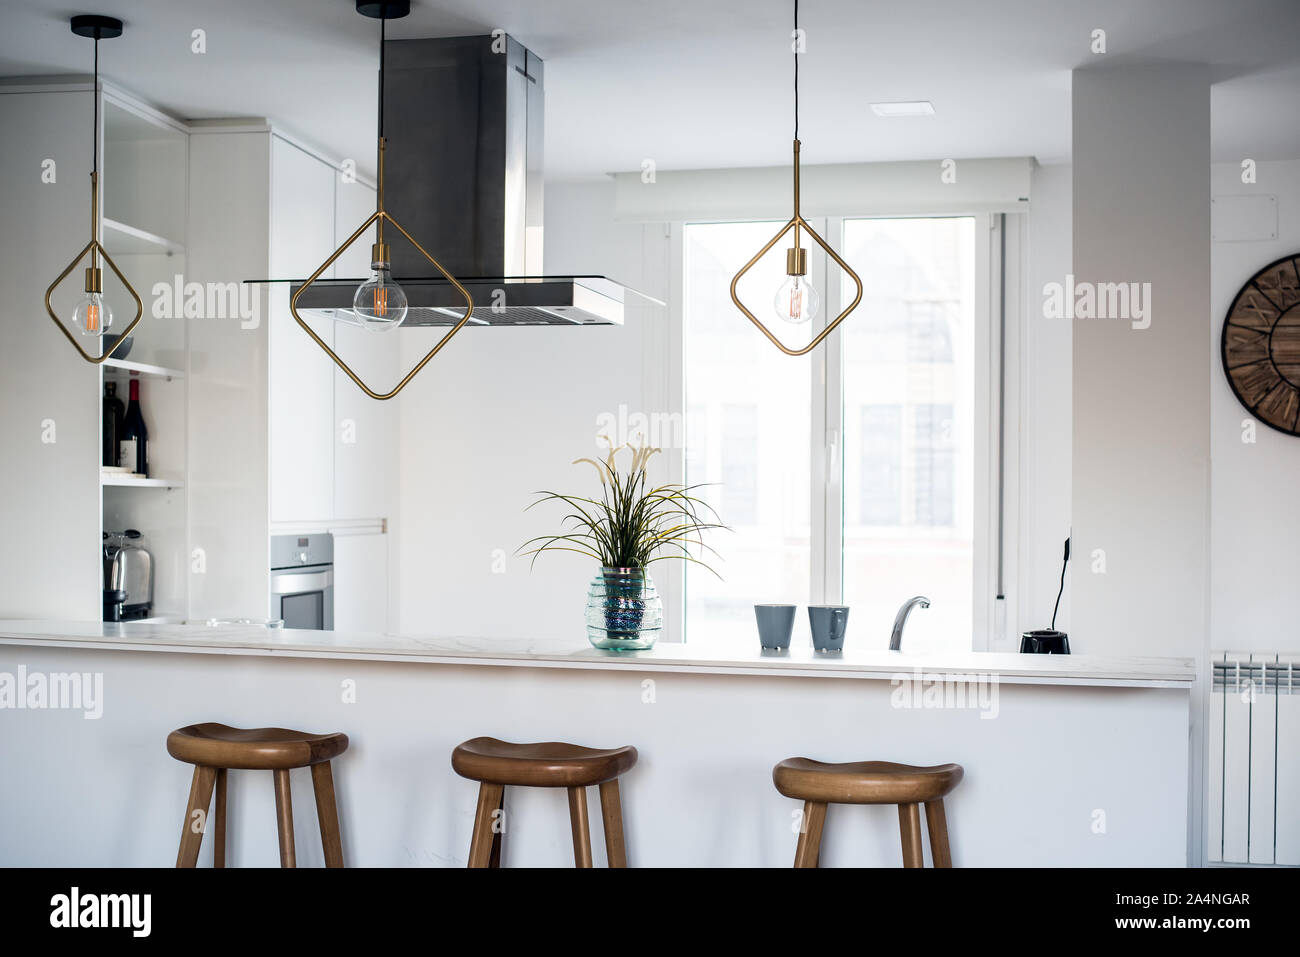 House Interior High Resolution Stock Photography And Images Alamy